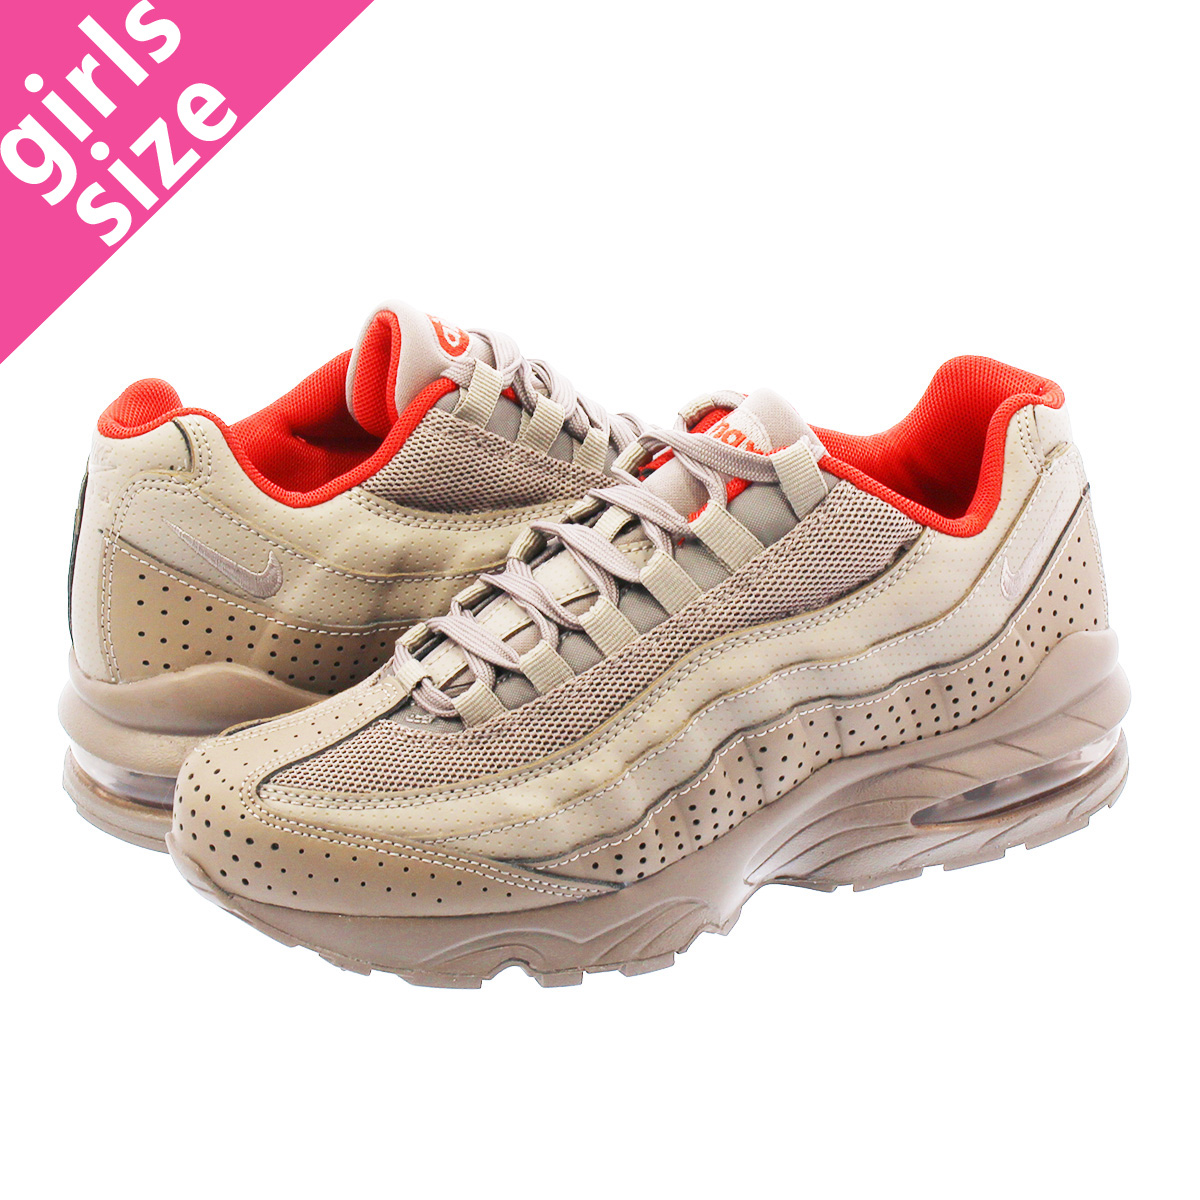 LOWTEX BIG-SMALL SHOP  NIKE AIR MAX 95 SE GS Kie Ney AMAX 95 SE GS ... e74f2473b